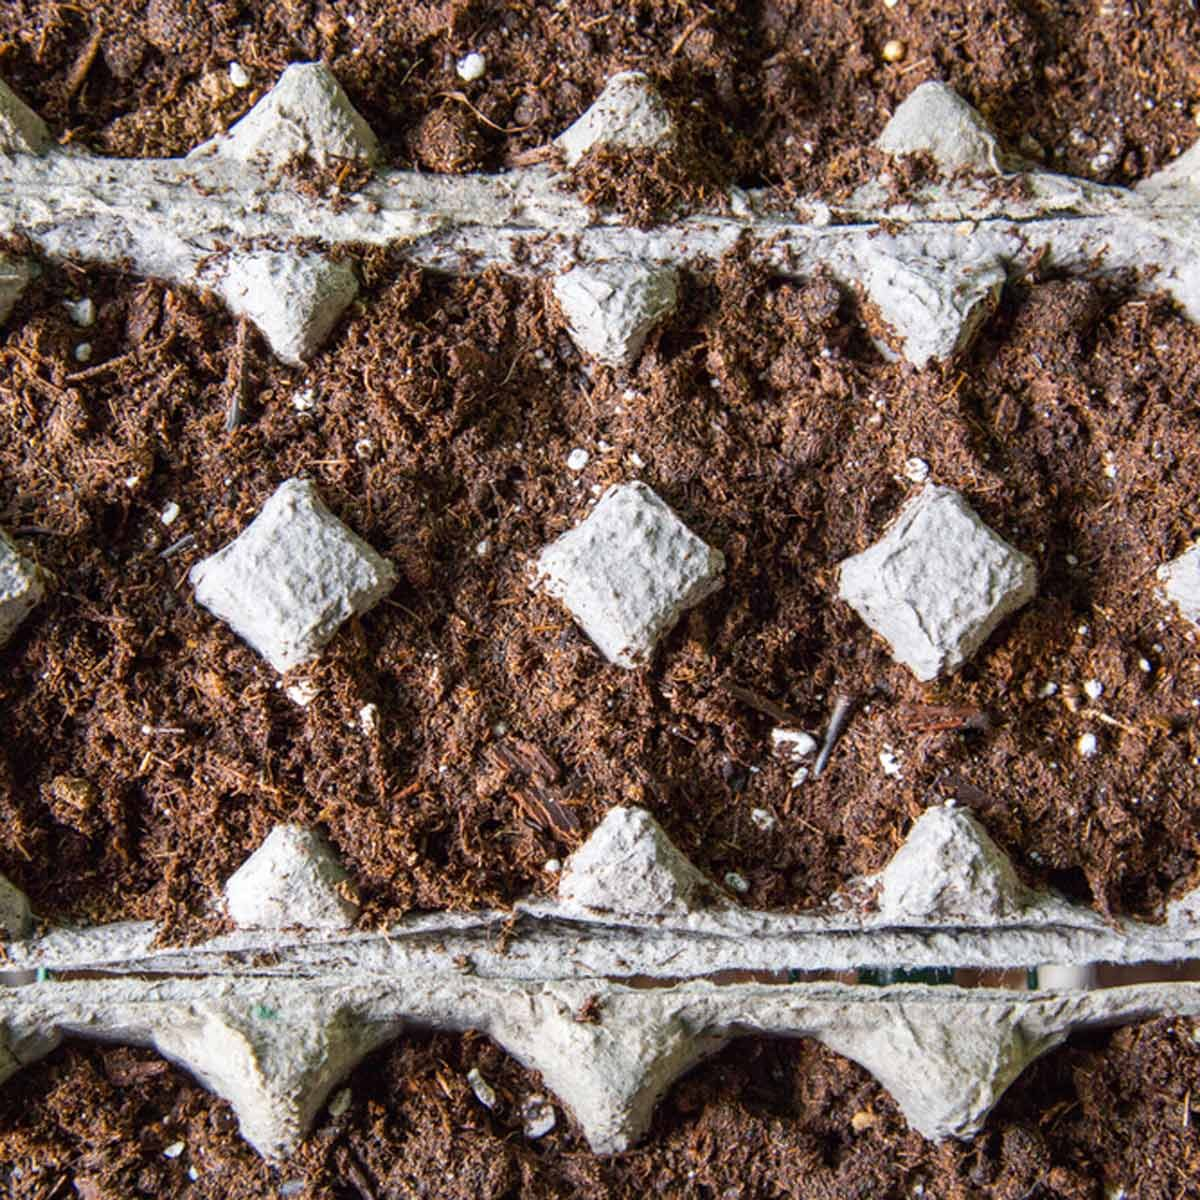 Seeds planted in egg cartons how to grow seeds indoors